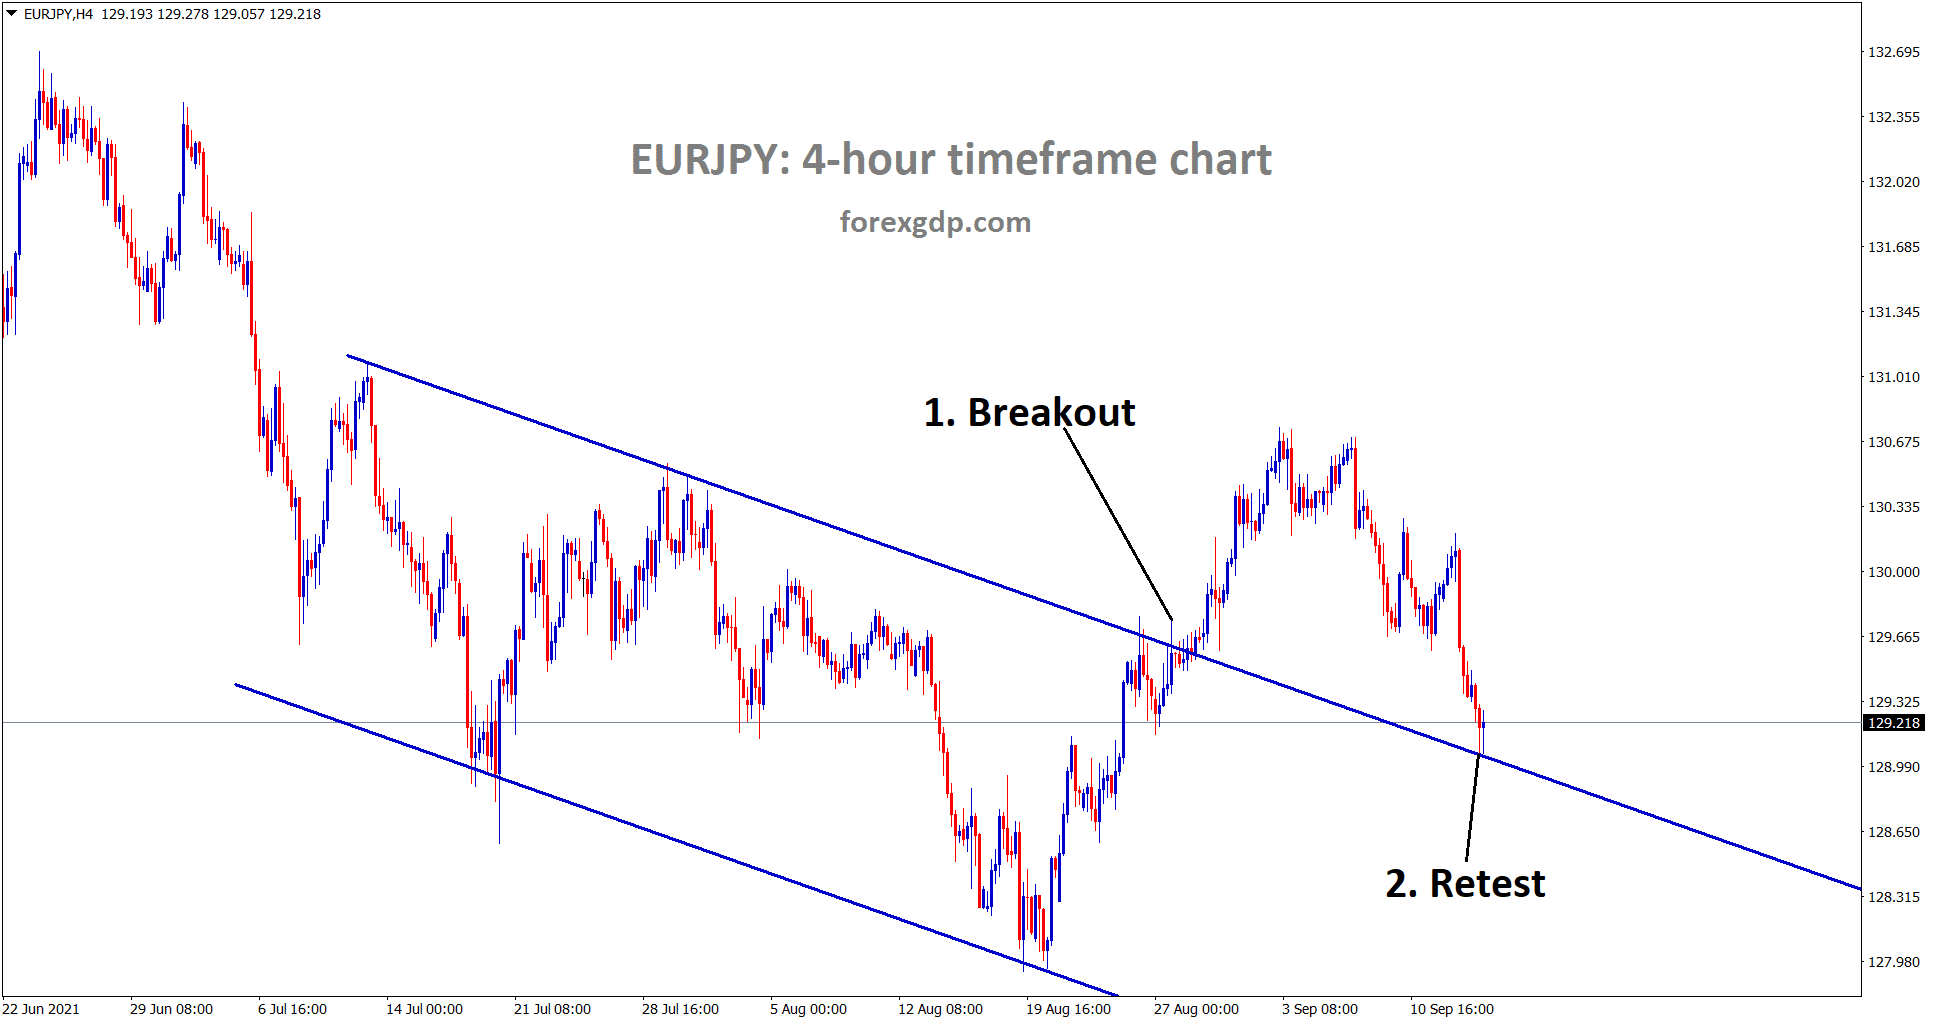 EURJPY is standing at the retest area of the broken descending channel